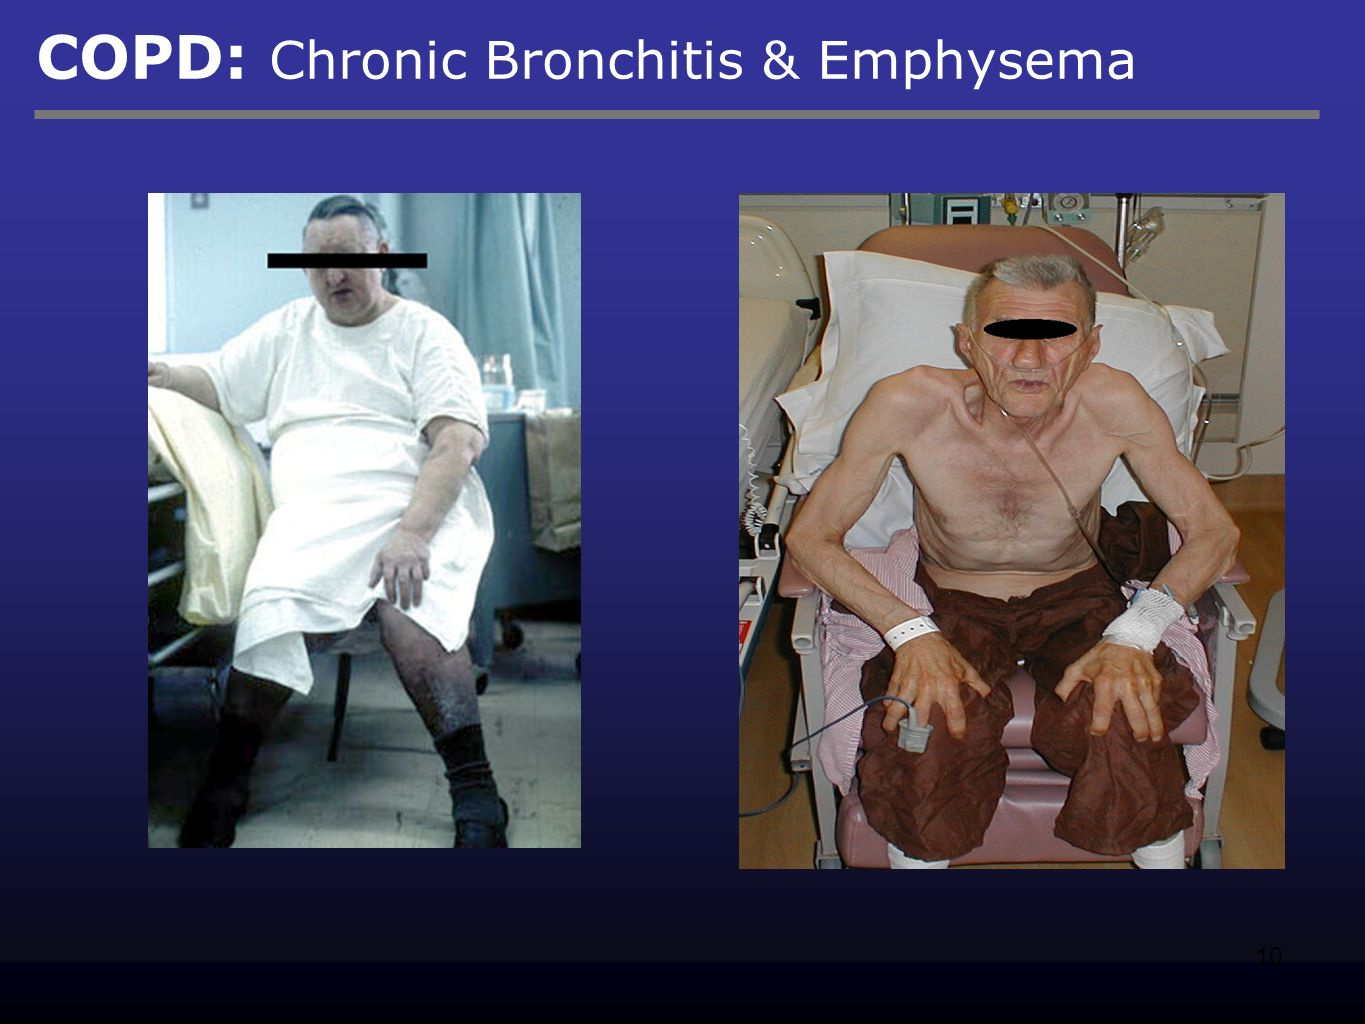 chronic bronchitis and emphysema What is copd chronic obstructive pulmonary disease (copd) is an umbrella term used to describe progressive lung diseases including emphysema, chronic bronchitis, and refractory (non-reversible) asthma this disease is.